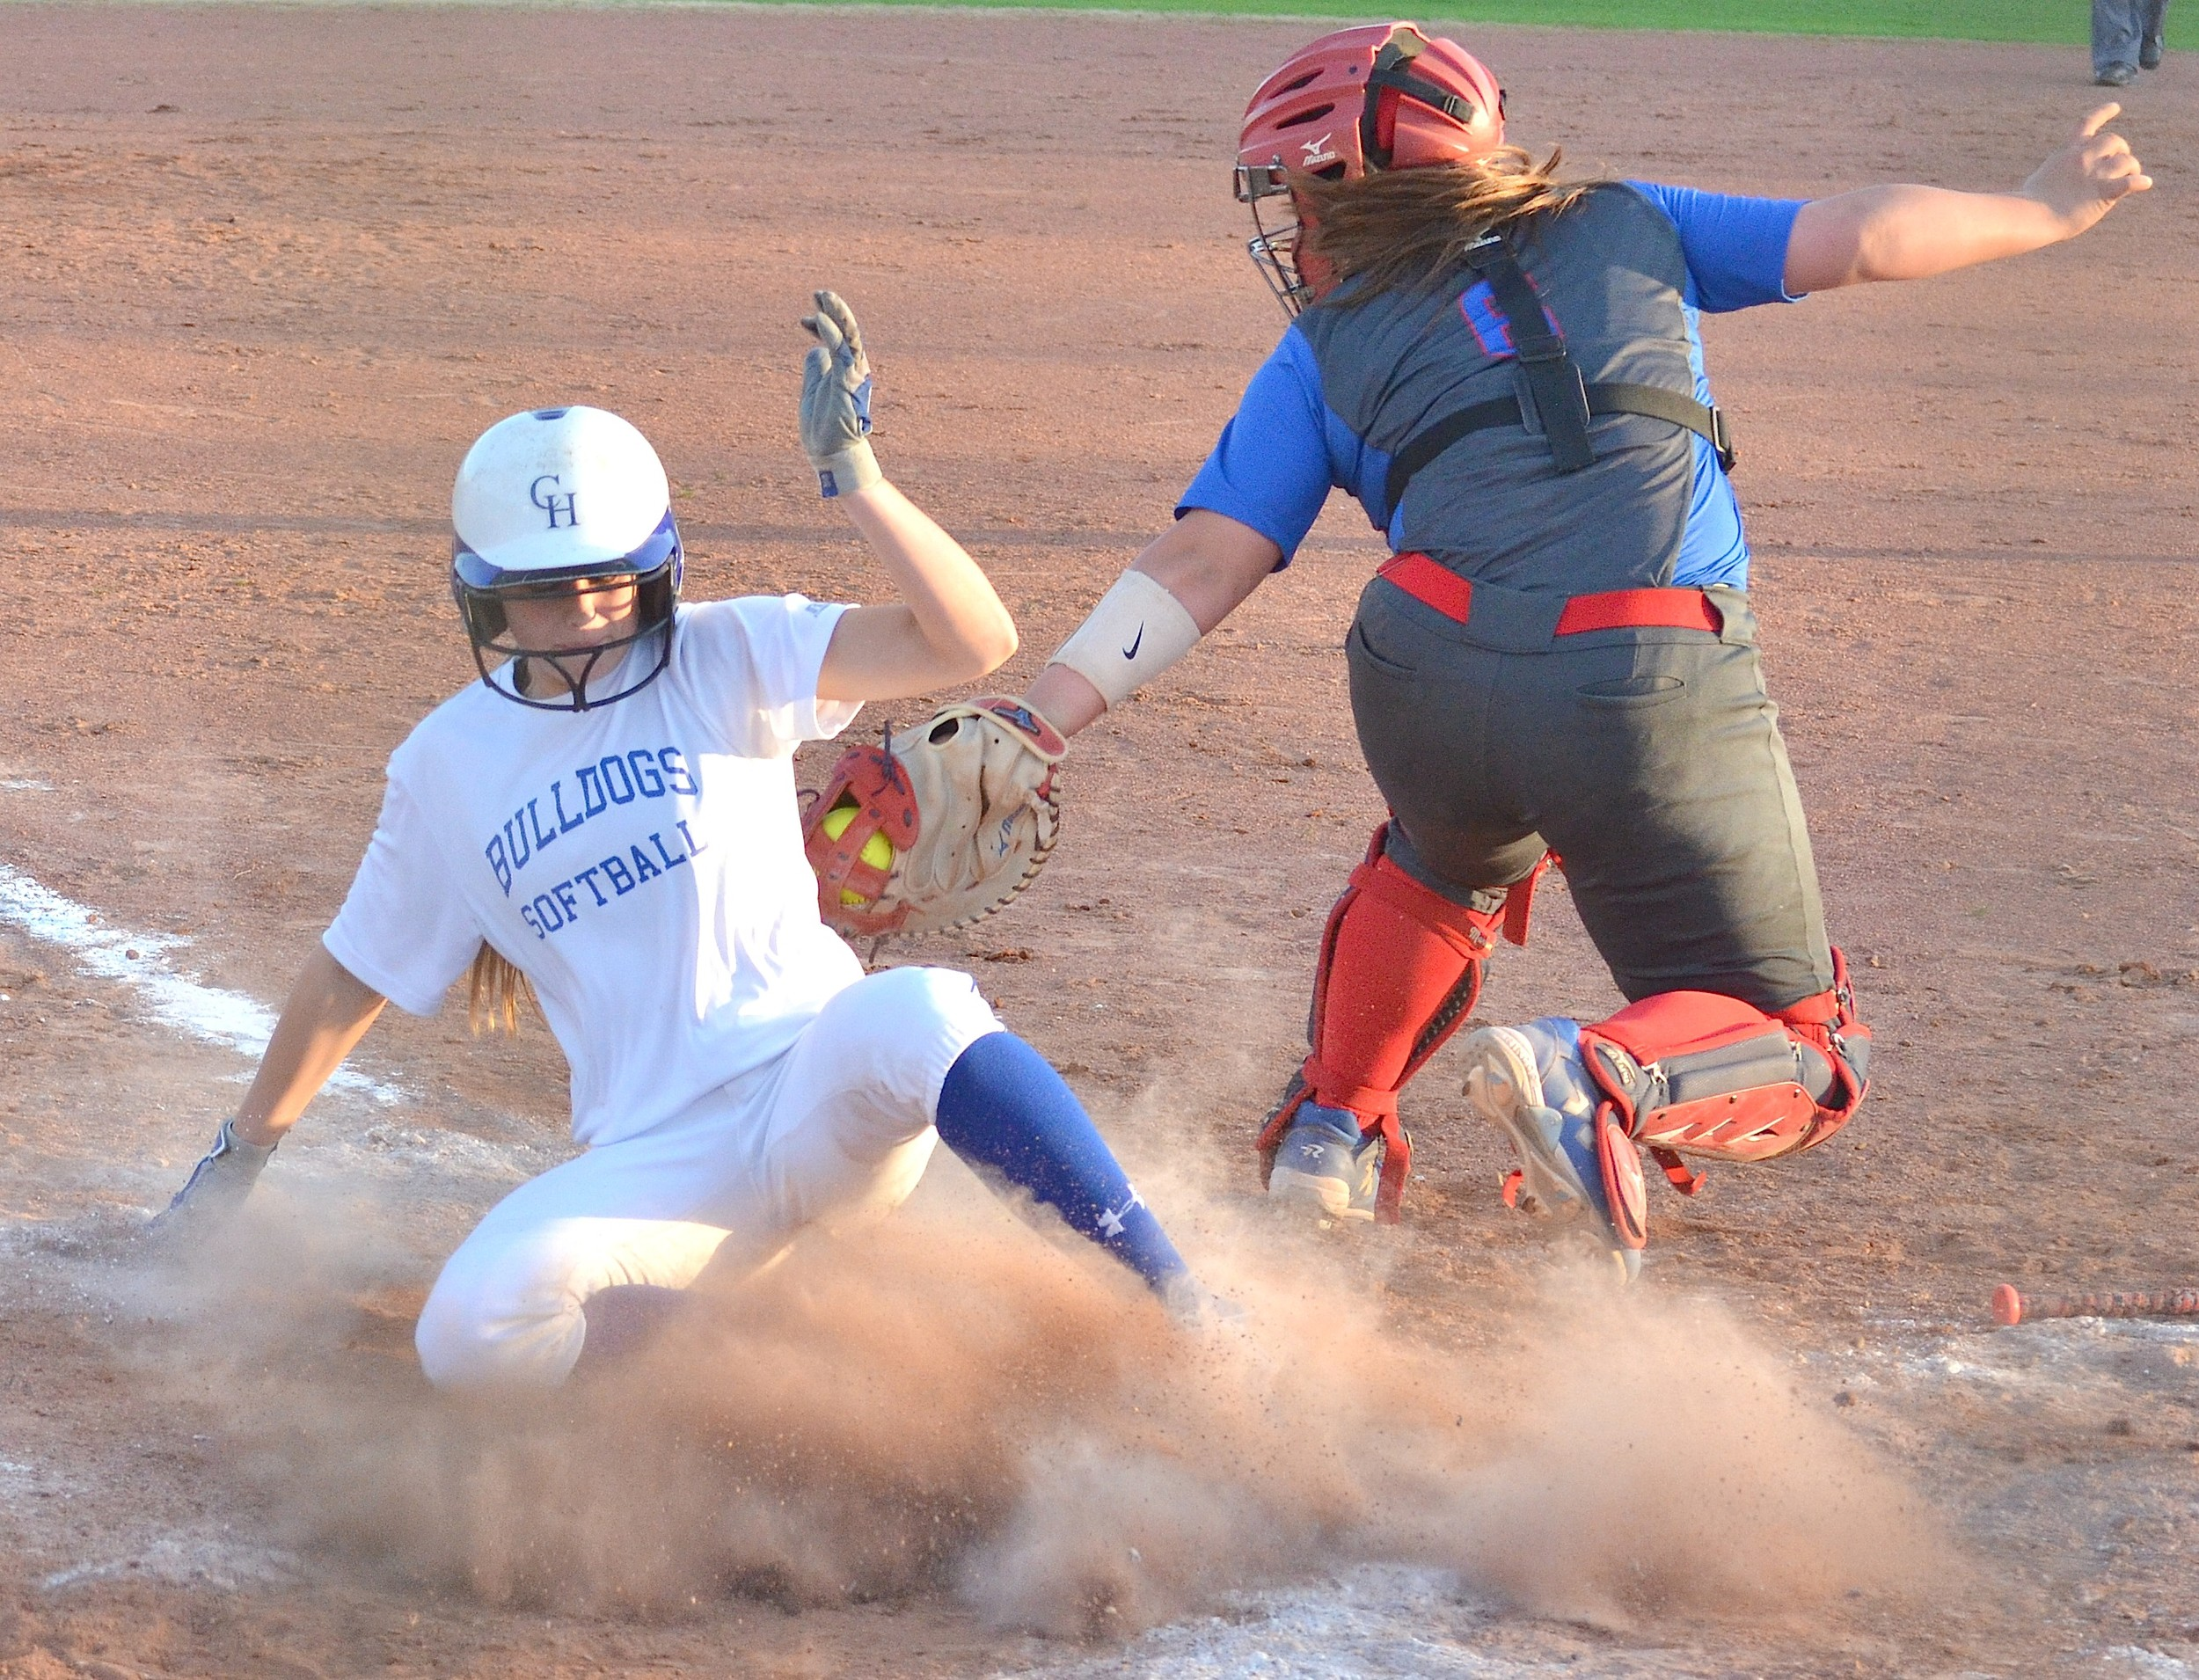 Carbon Hill's Katie Moore, left, beats the tag of Cordova's Ansley Ardoin during their Class 4A, Area 9 game at Cordova High School on Tuesday. The Bulldogs scored four runs in the sixth inning to earn a 6-3 win over Cordova.